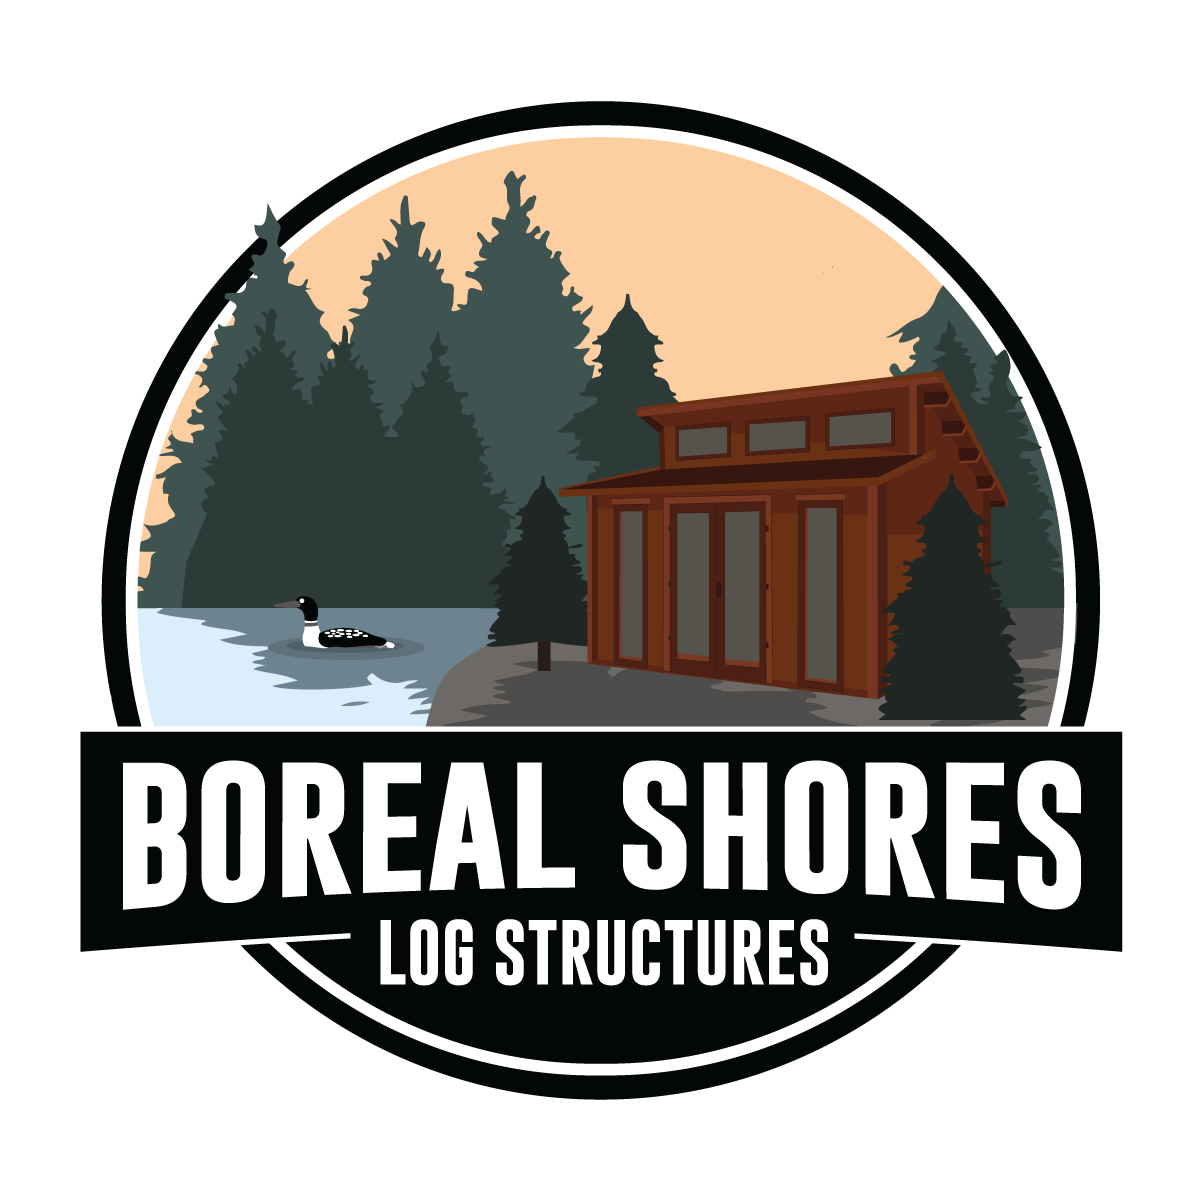 Boreal Shores Log Structures